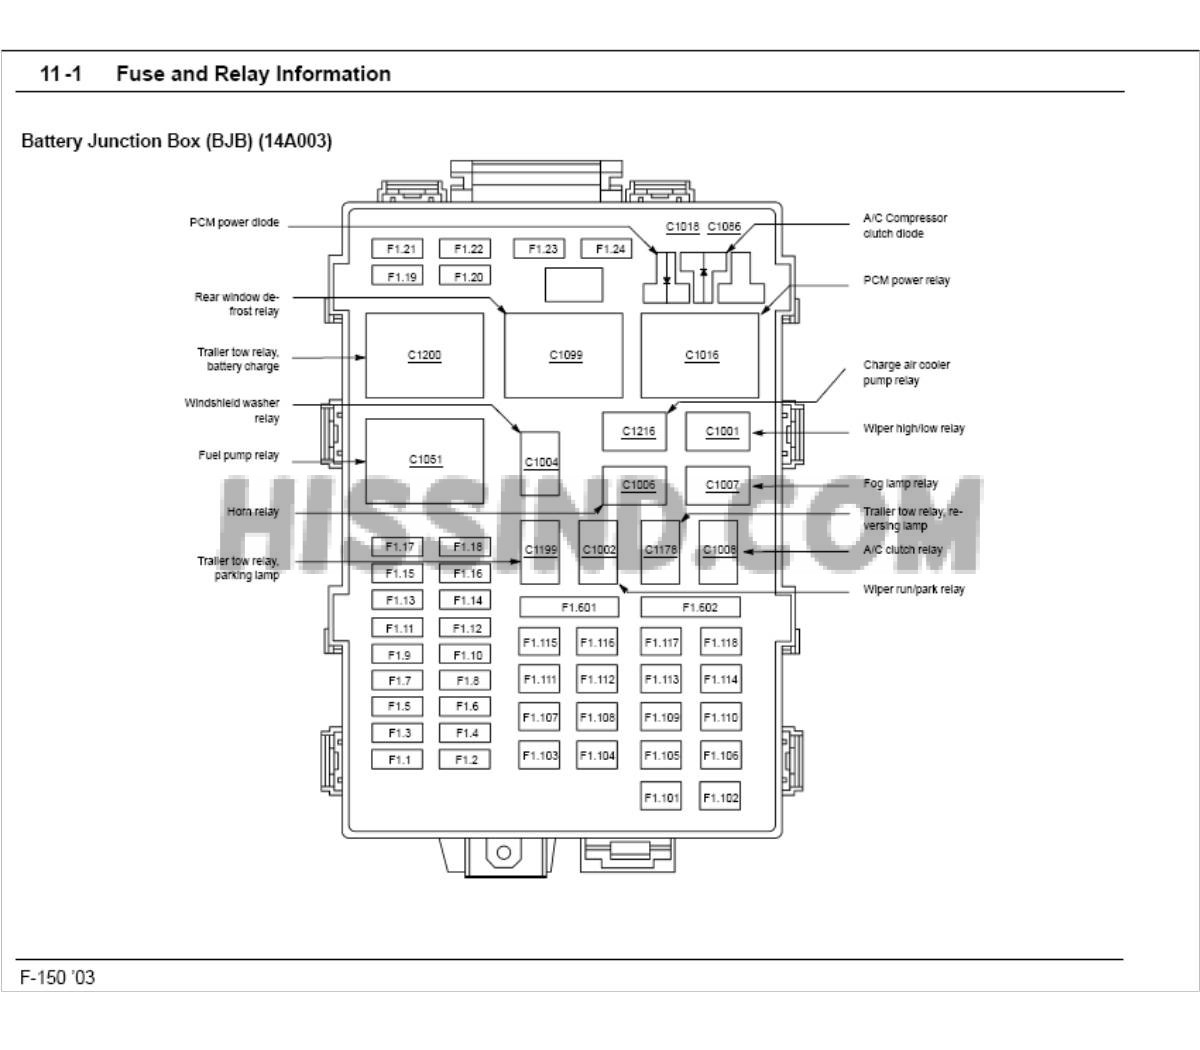 2004 Ford Explorer Fuse Box Under Hood 38 Wiring Diagram Images 2000 F150 Engine Bay